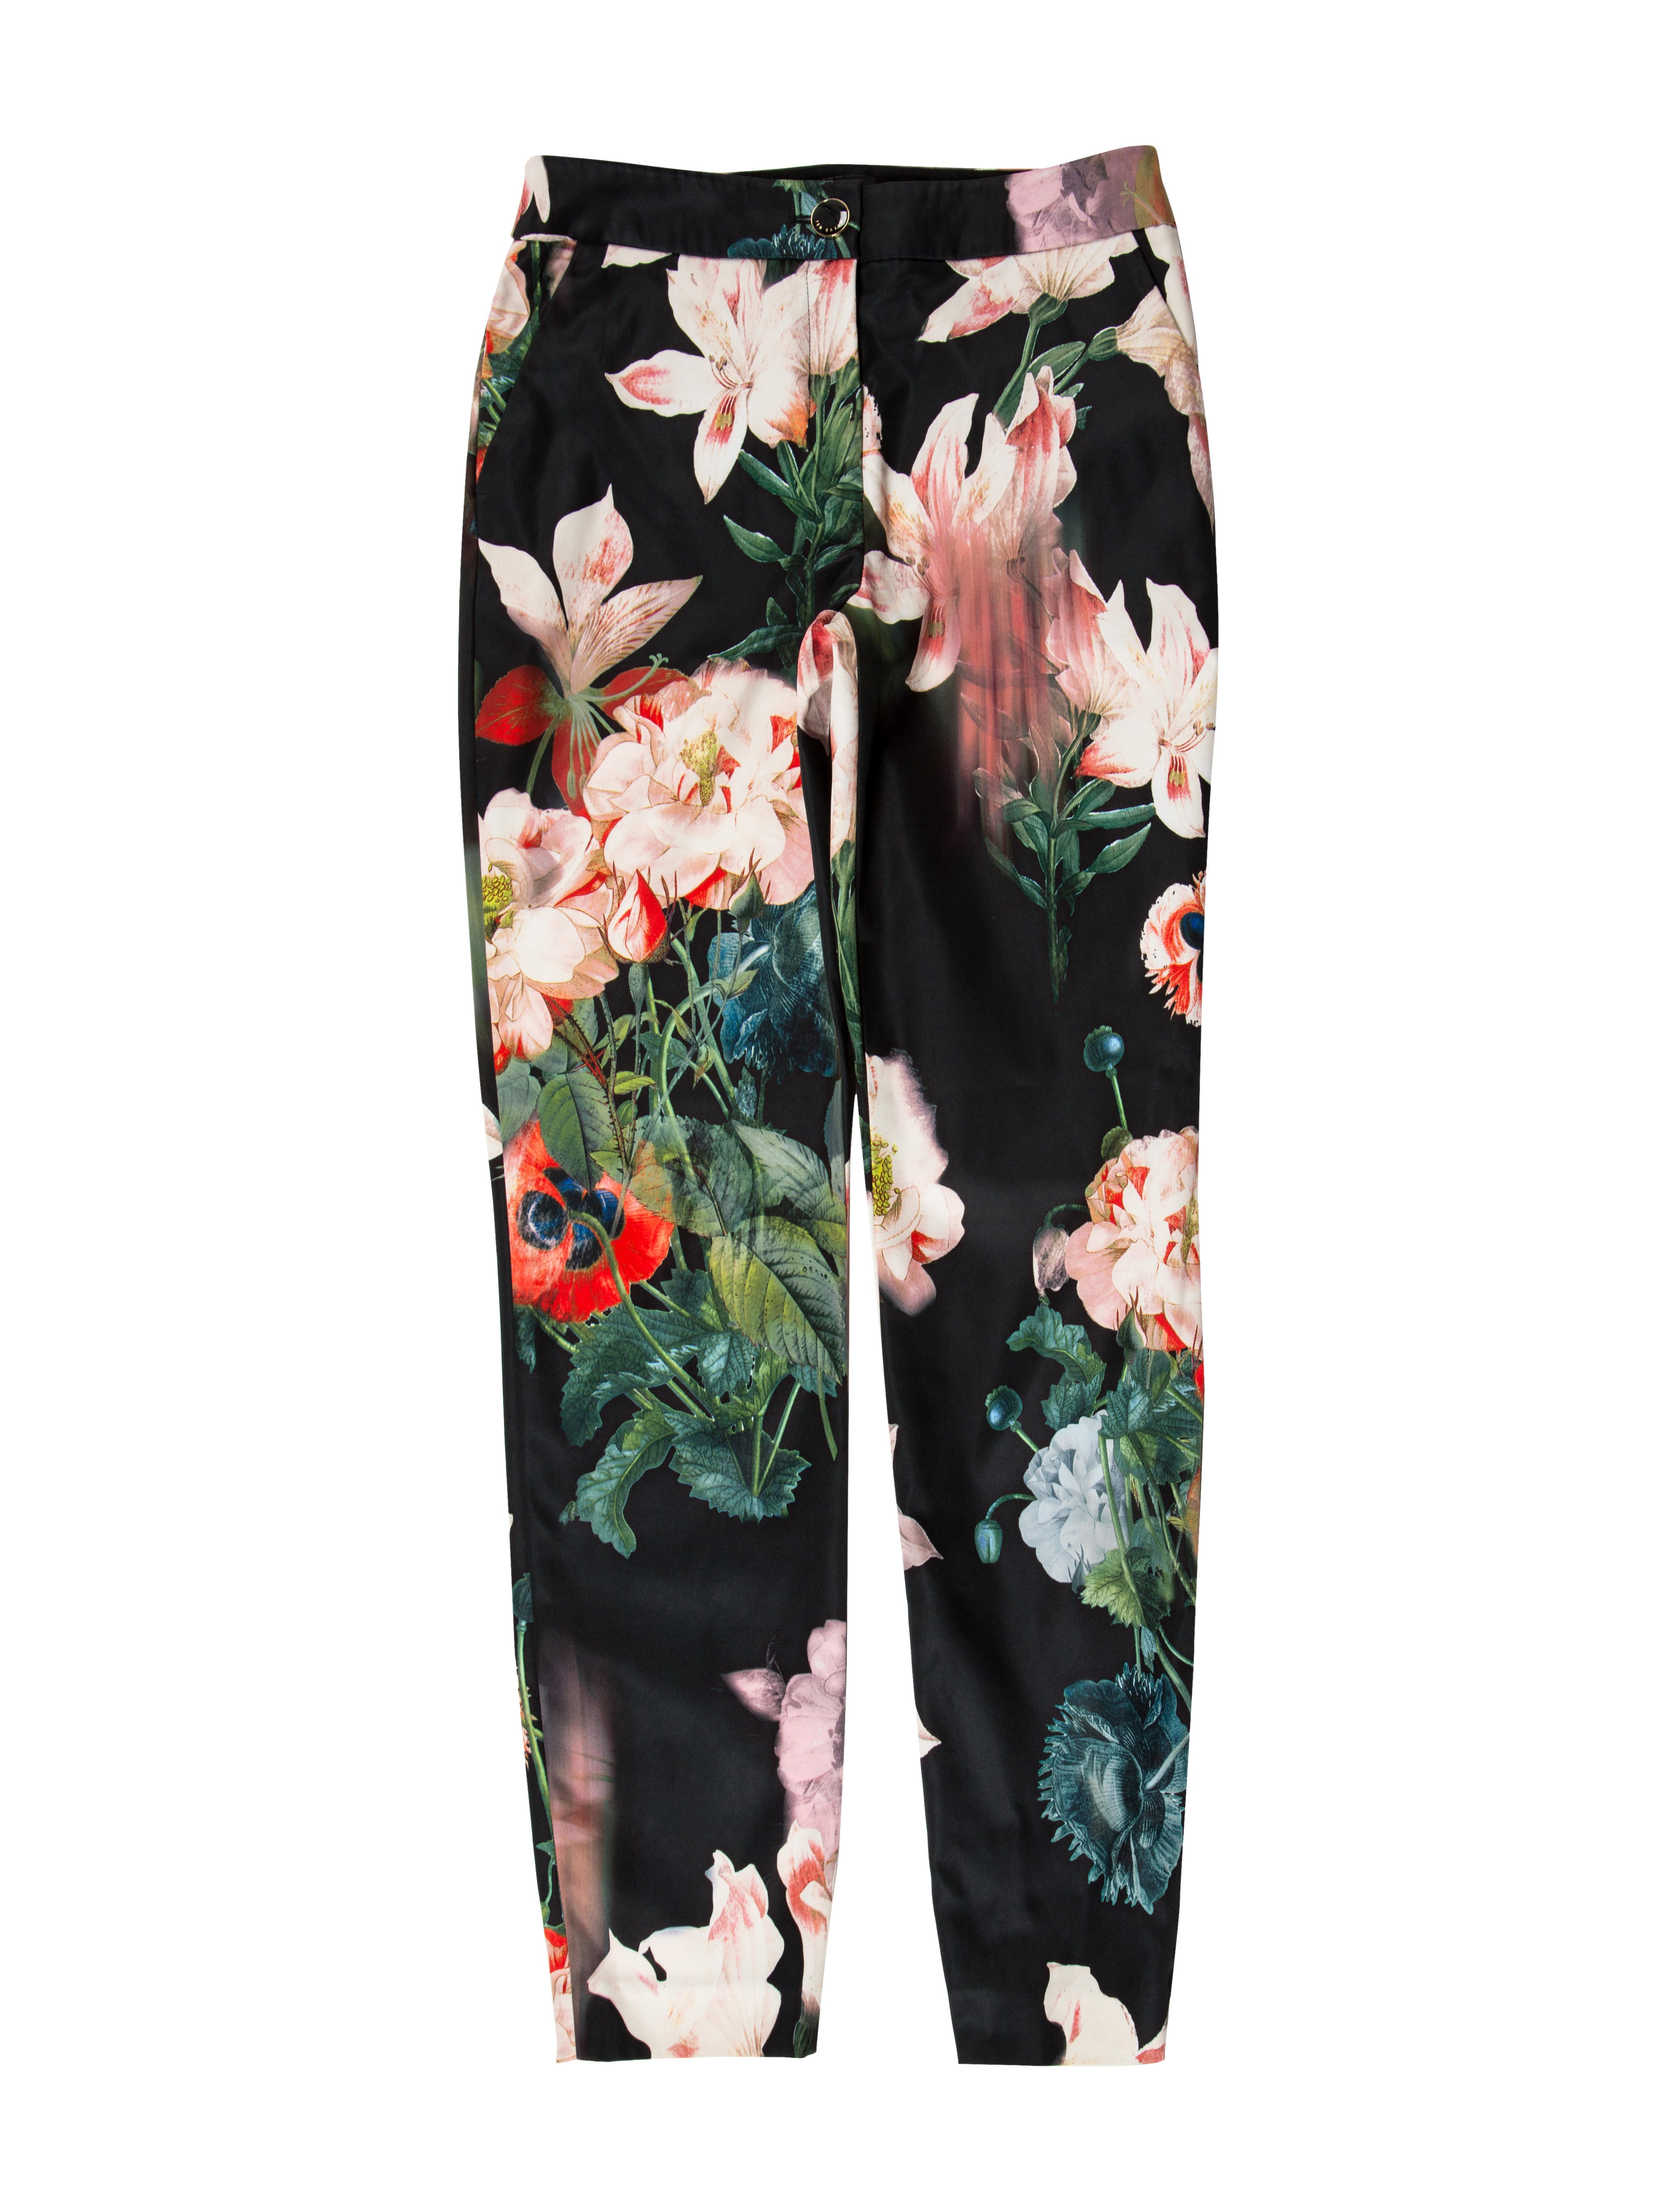 dd7f65fc9532 Ted Baker Floral Print Mid-Rise Pants - Clothing - W3B20966